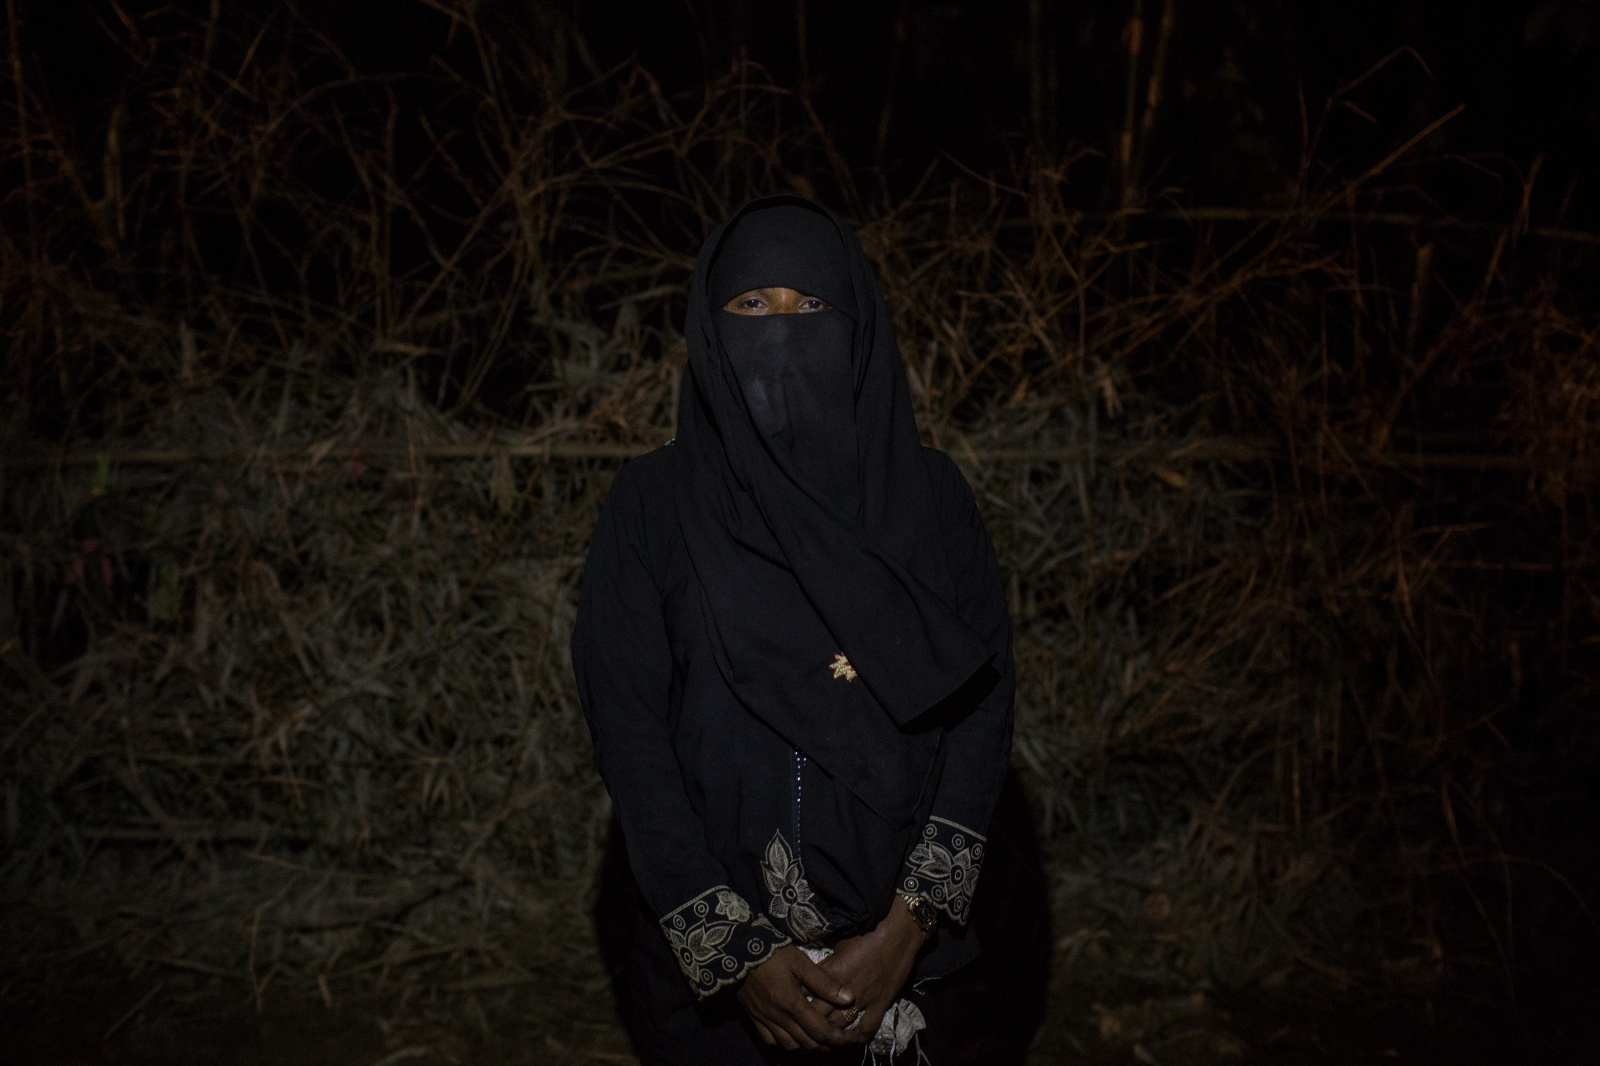 Nulbahar, 20, waits by the side of the road for food and cash distributions near the Balukhali refugee camp in Bangladesh on Friday September 22, 2017. Nulbahar, from the Maungdaw Township in Myanmar fled with her five children after the Burmese Army took her husband out of their house. She does not know what happened to him.